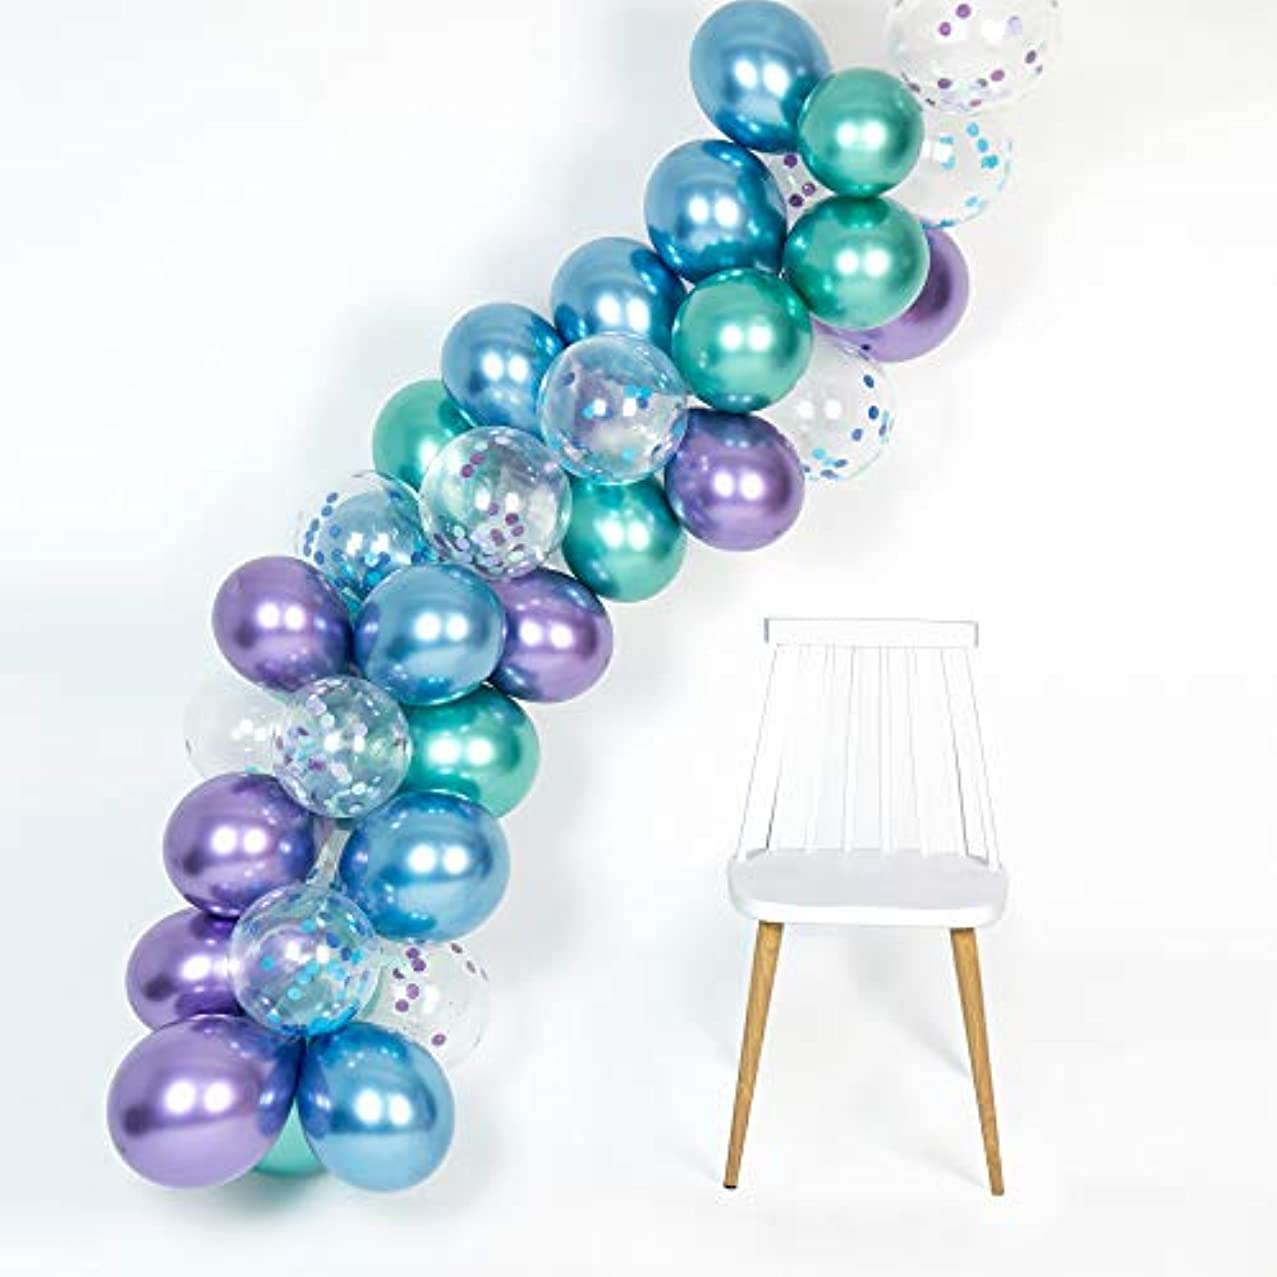 Mermaid Party Supplies Metallic Balloons Arch Kit 50Pcs Thicker Balloon for Birthday Bridal Shower Baby Shower Under The Sea Chrome Blue Confetti Purple Green Color